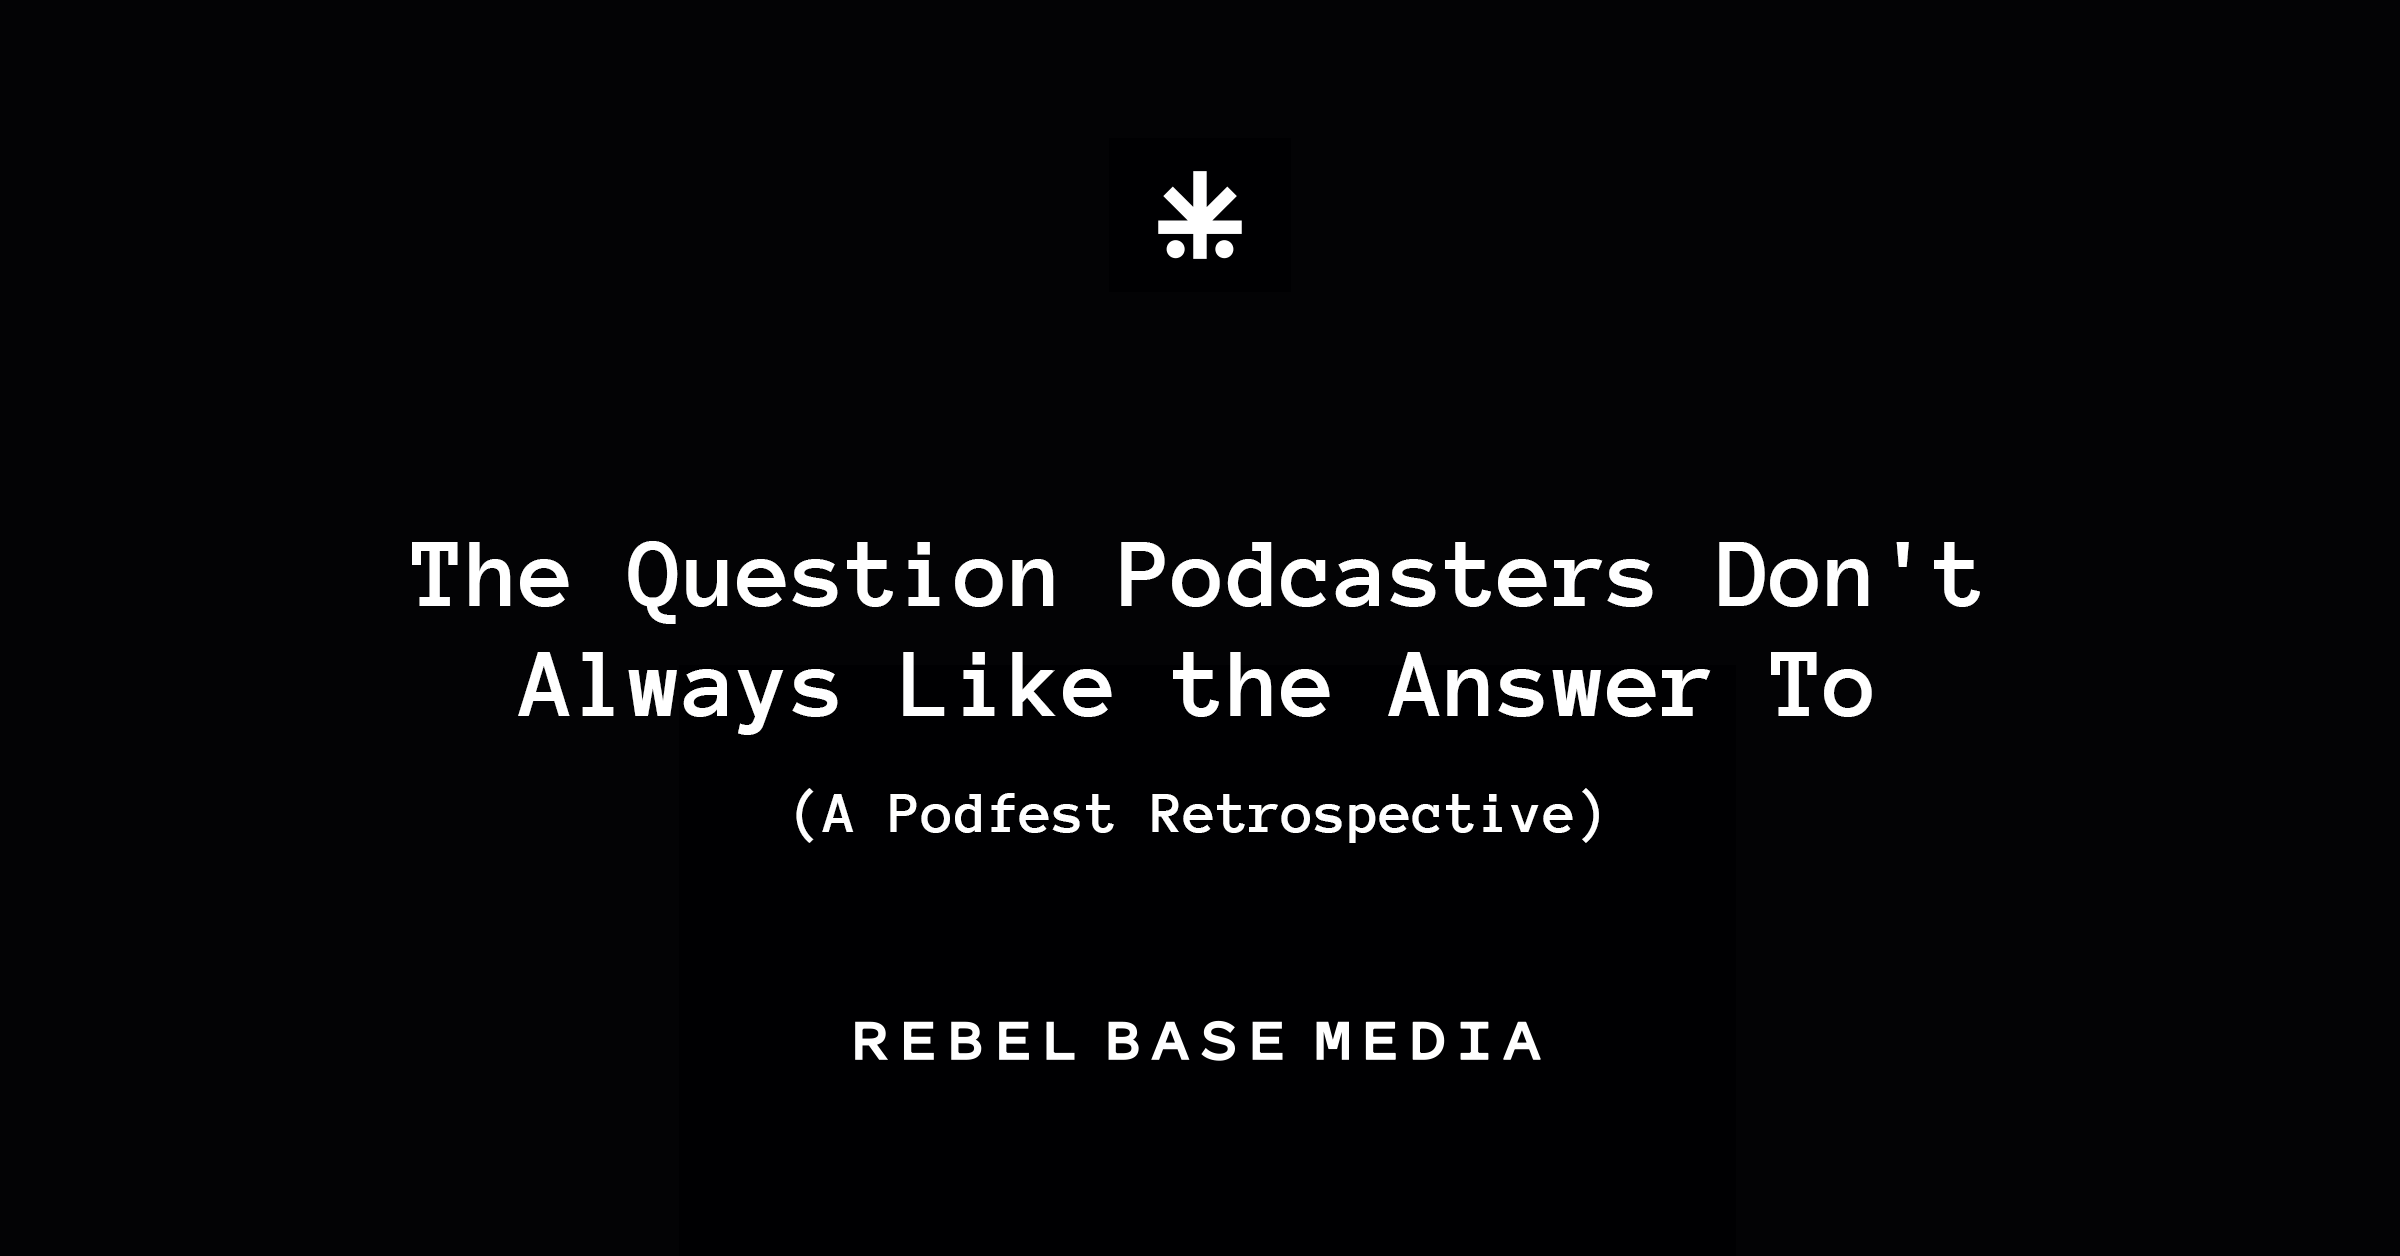 The Question Podcasters Don't Always Like the Answer To - FB